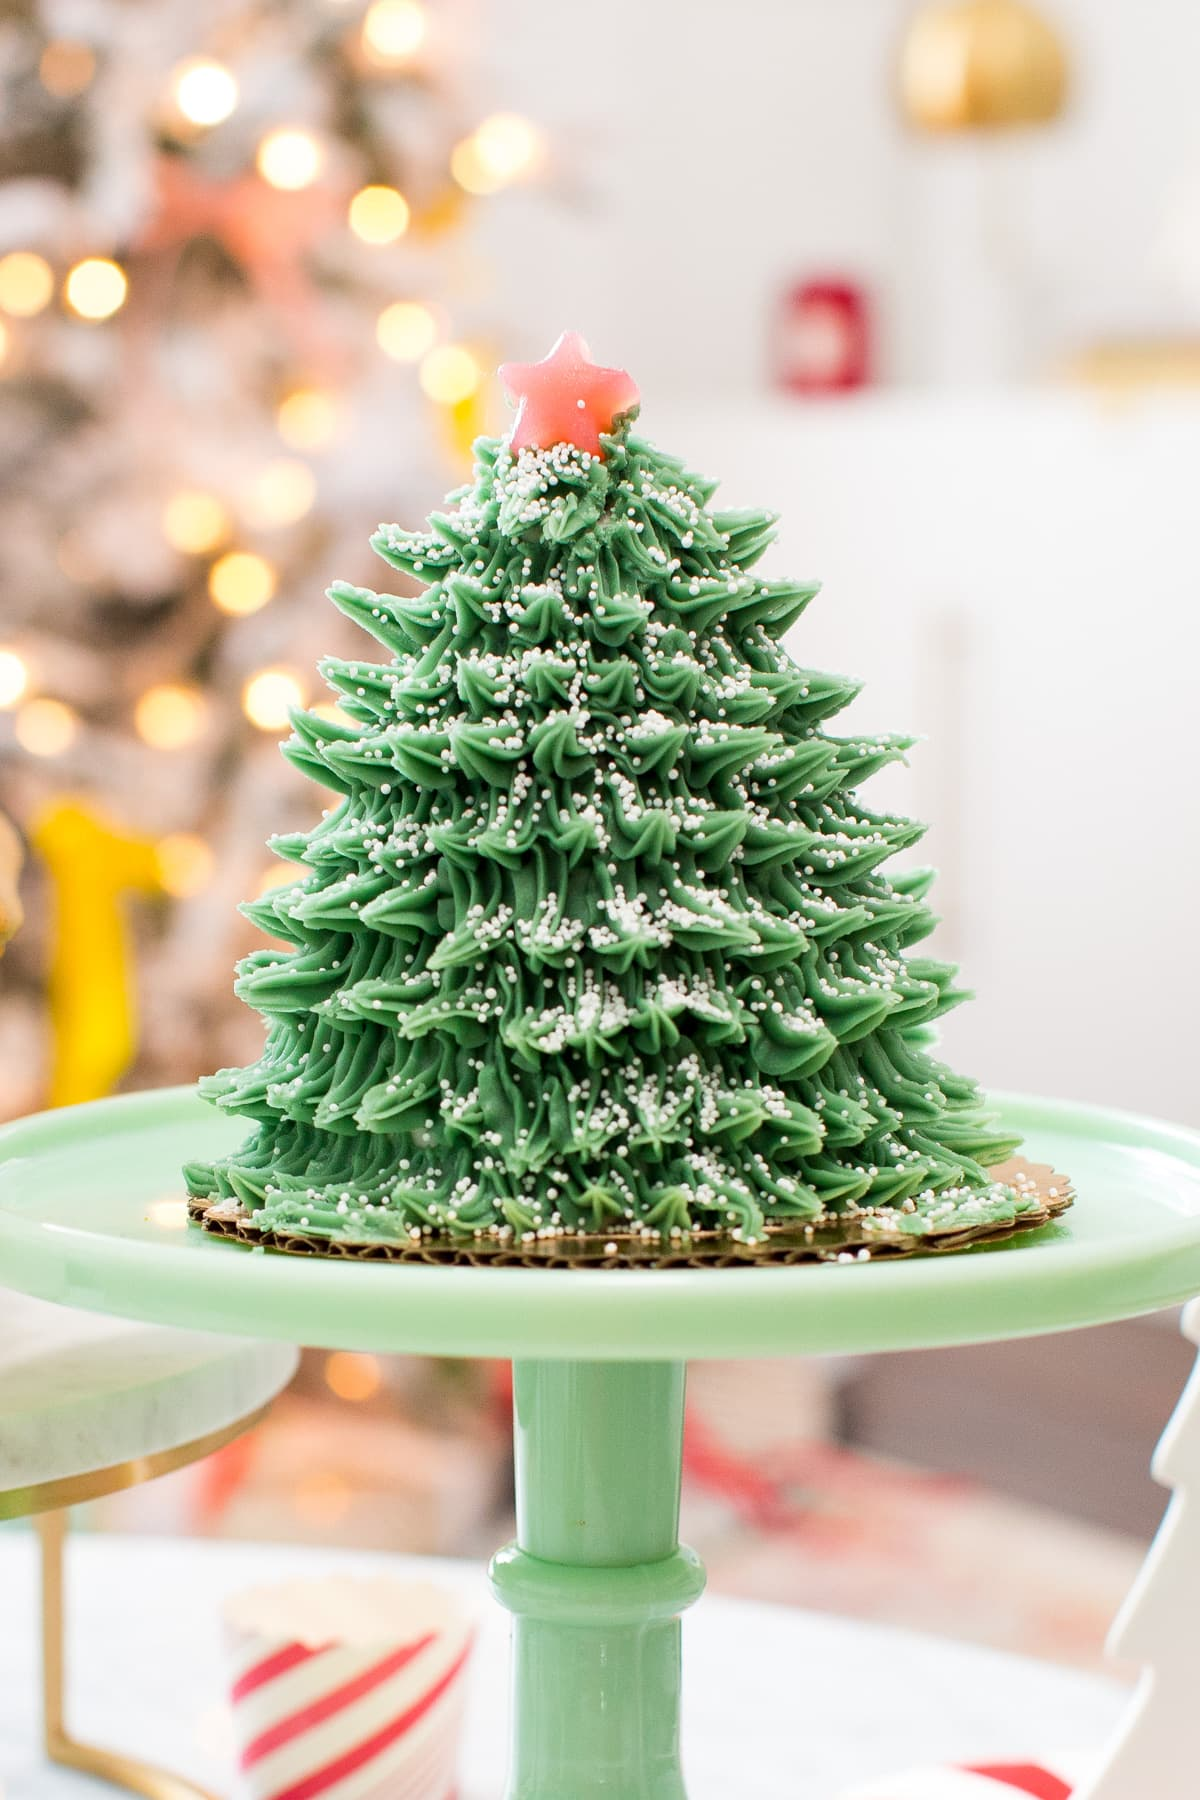 How We Decorated our Home for Christmas! by top Houston lifestyle blogger Ashley Rose of Sugar & Cloth